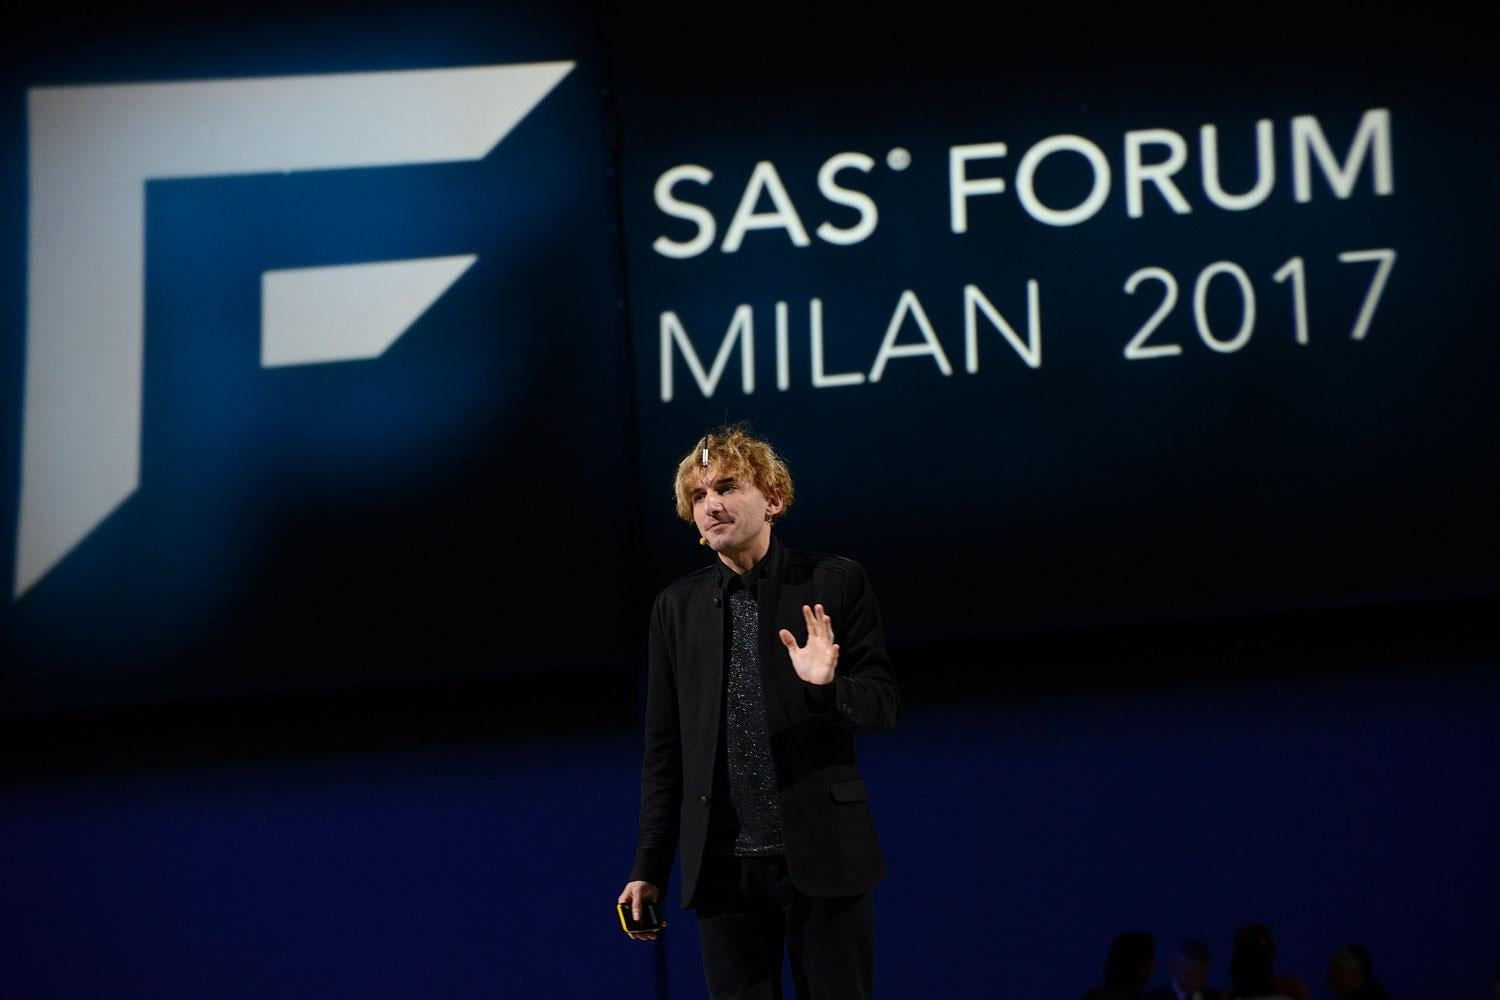 Neil Harbisson at SAS Forum Milan 2017